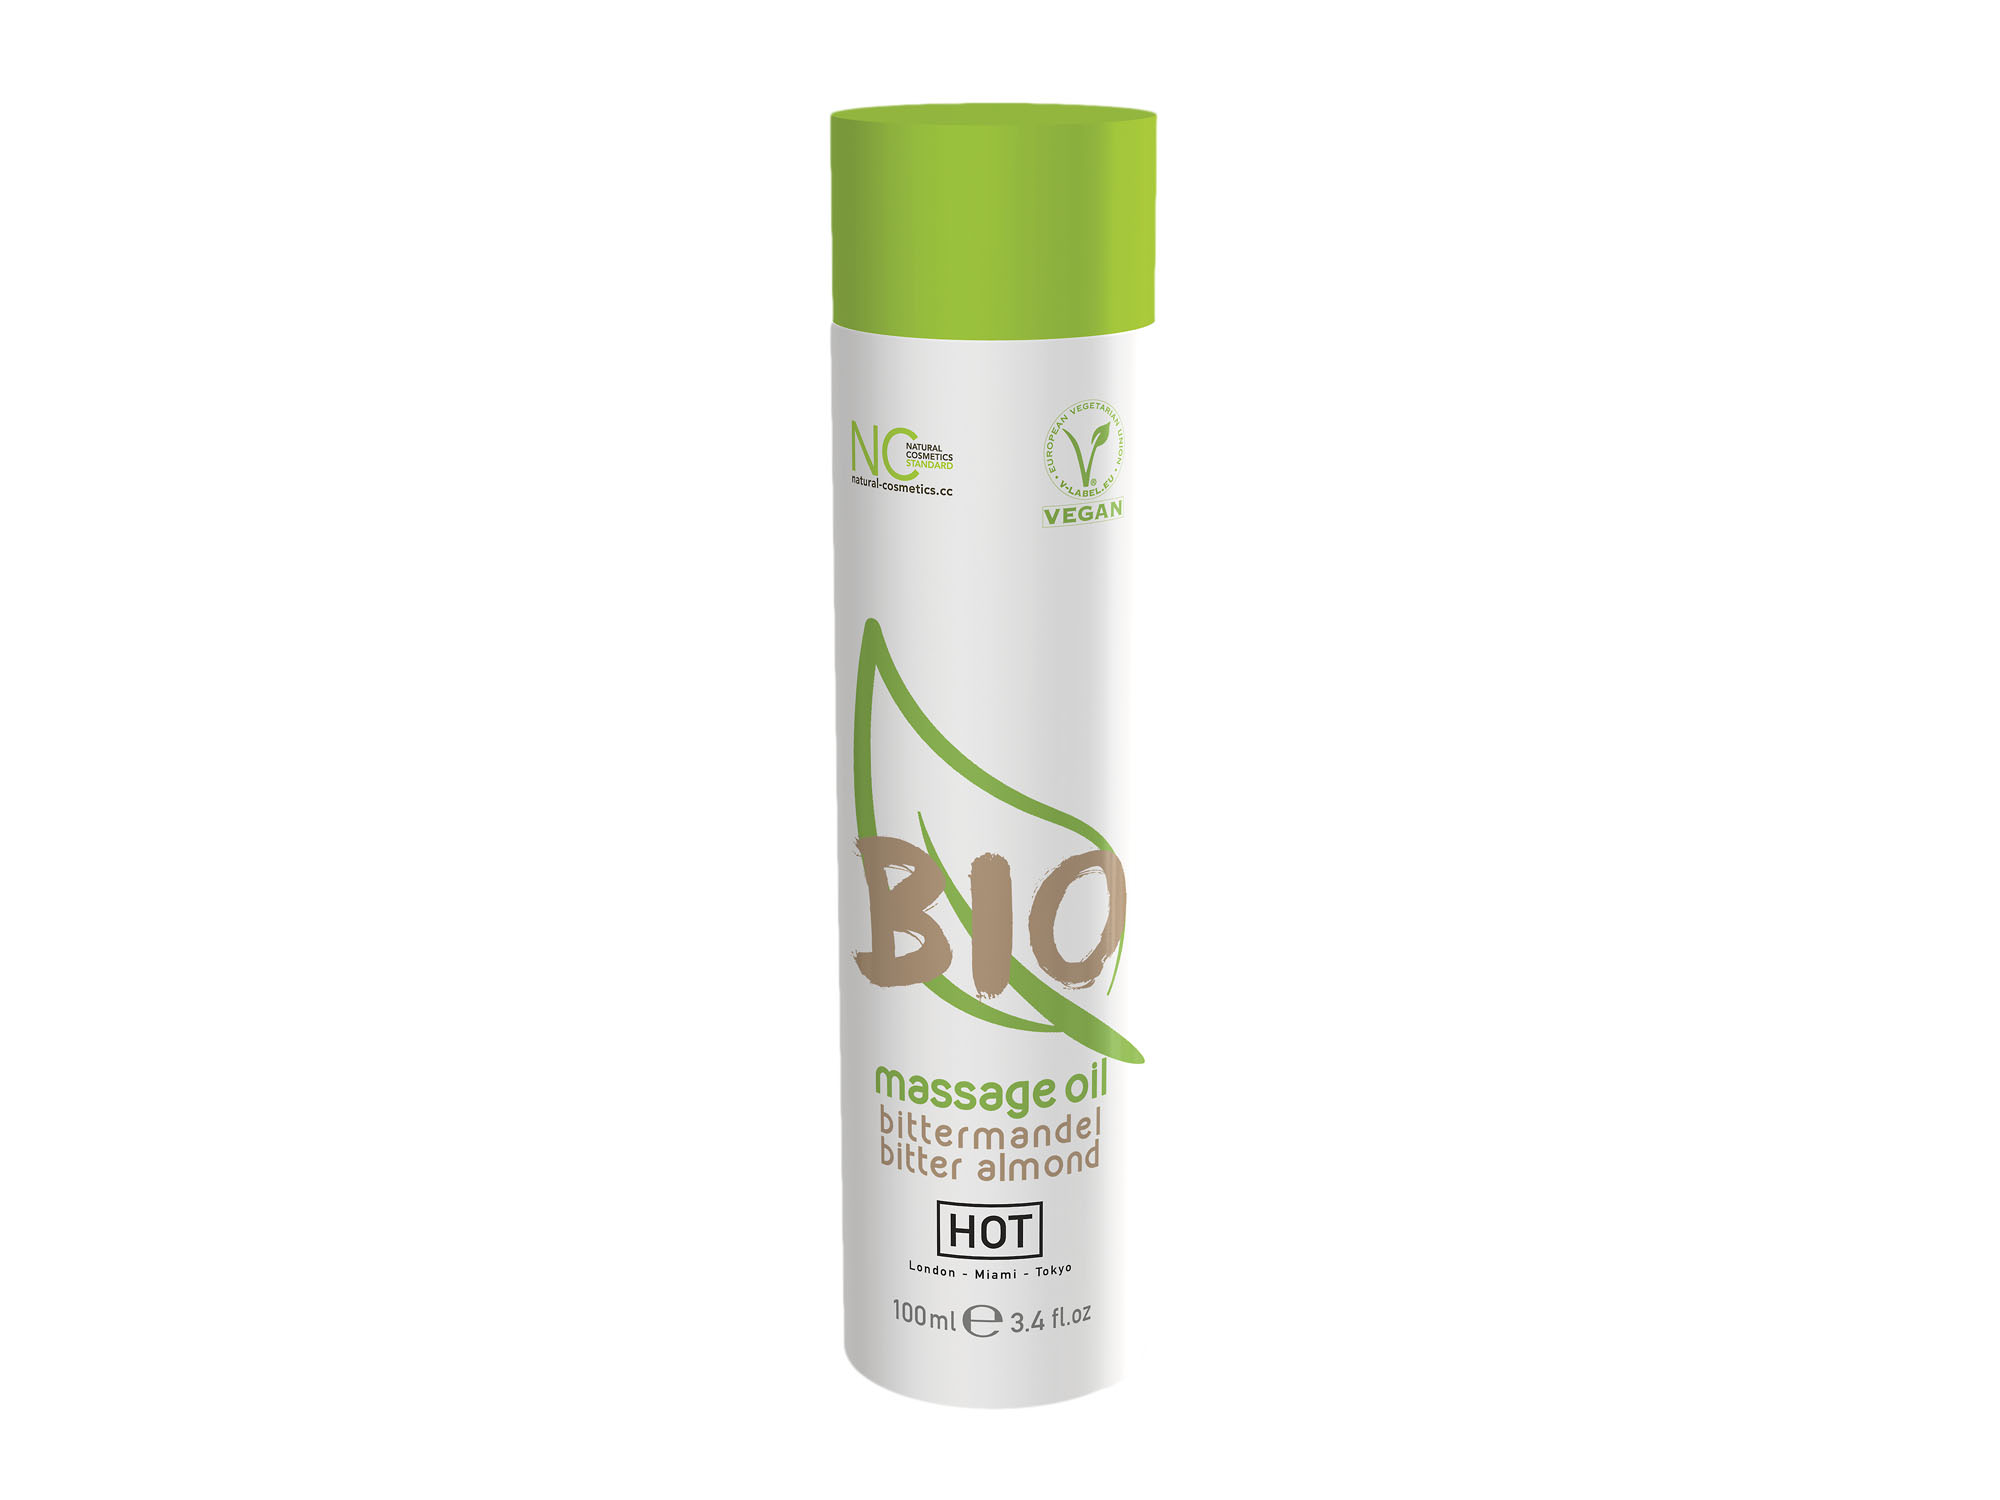 BIO Massageöl  Bittermandel, vegan 100ml